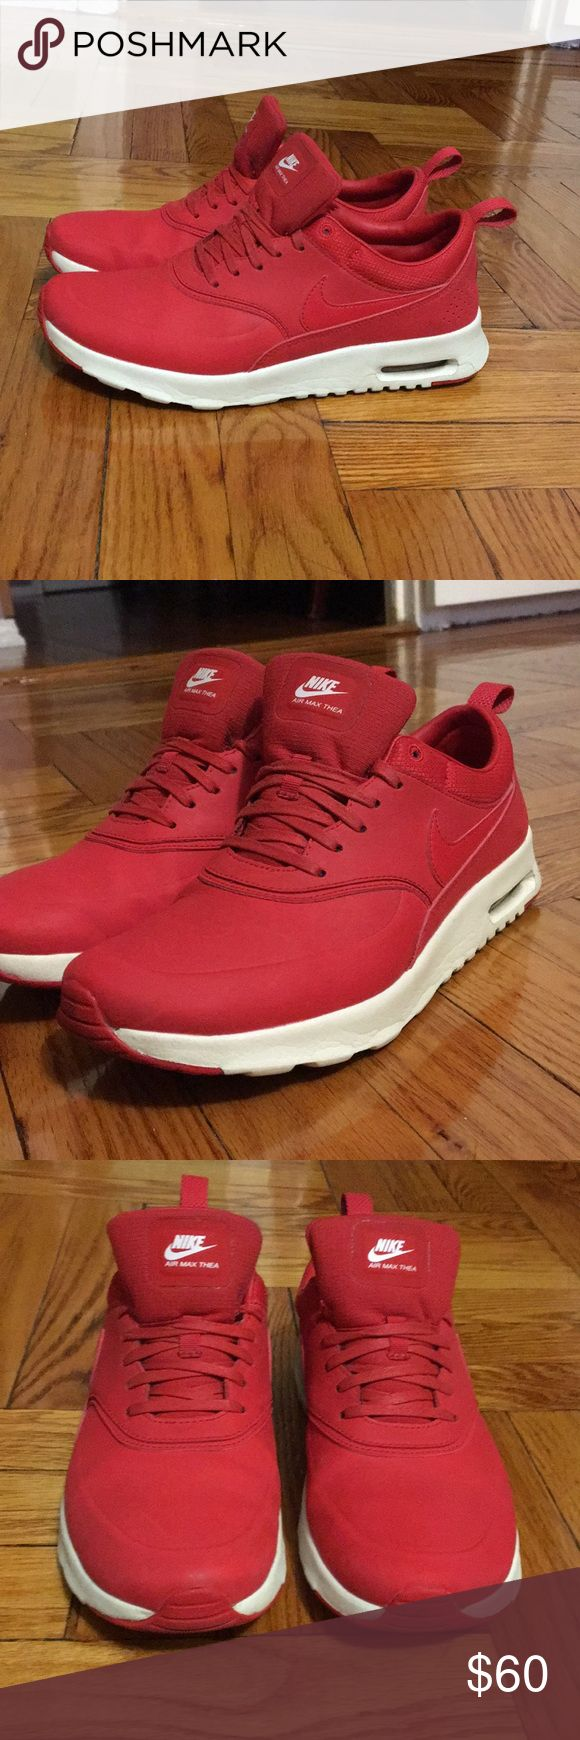 Nike Air Max Thea Premium in red Beautiful Nike Air Max Thea Premiums in size 8  Some normal wear but still great condition Nike Shoes Sneakers